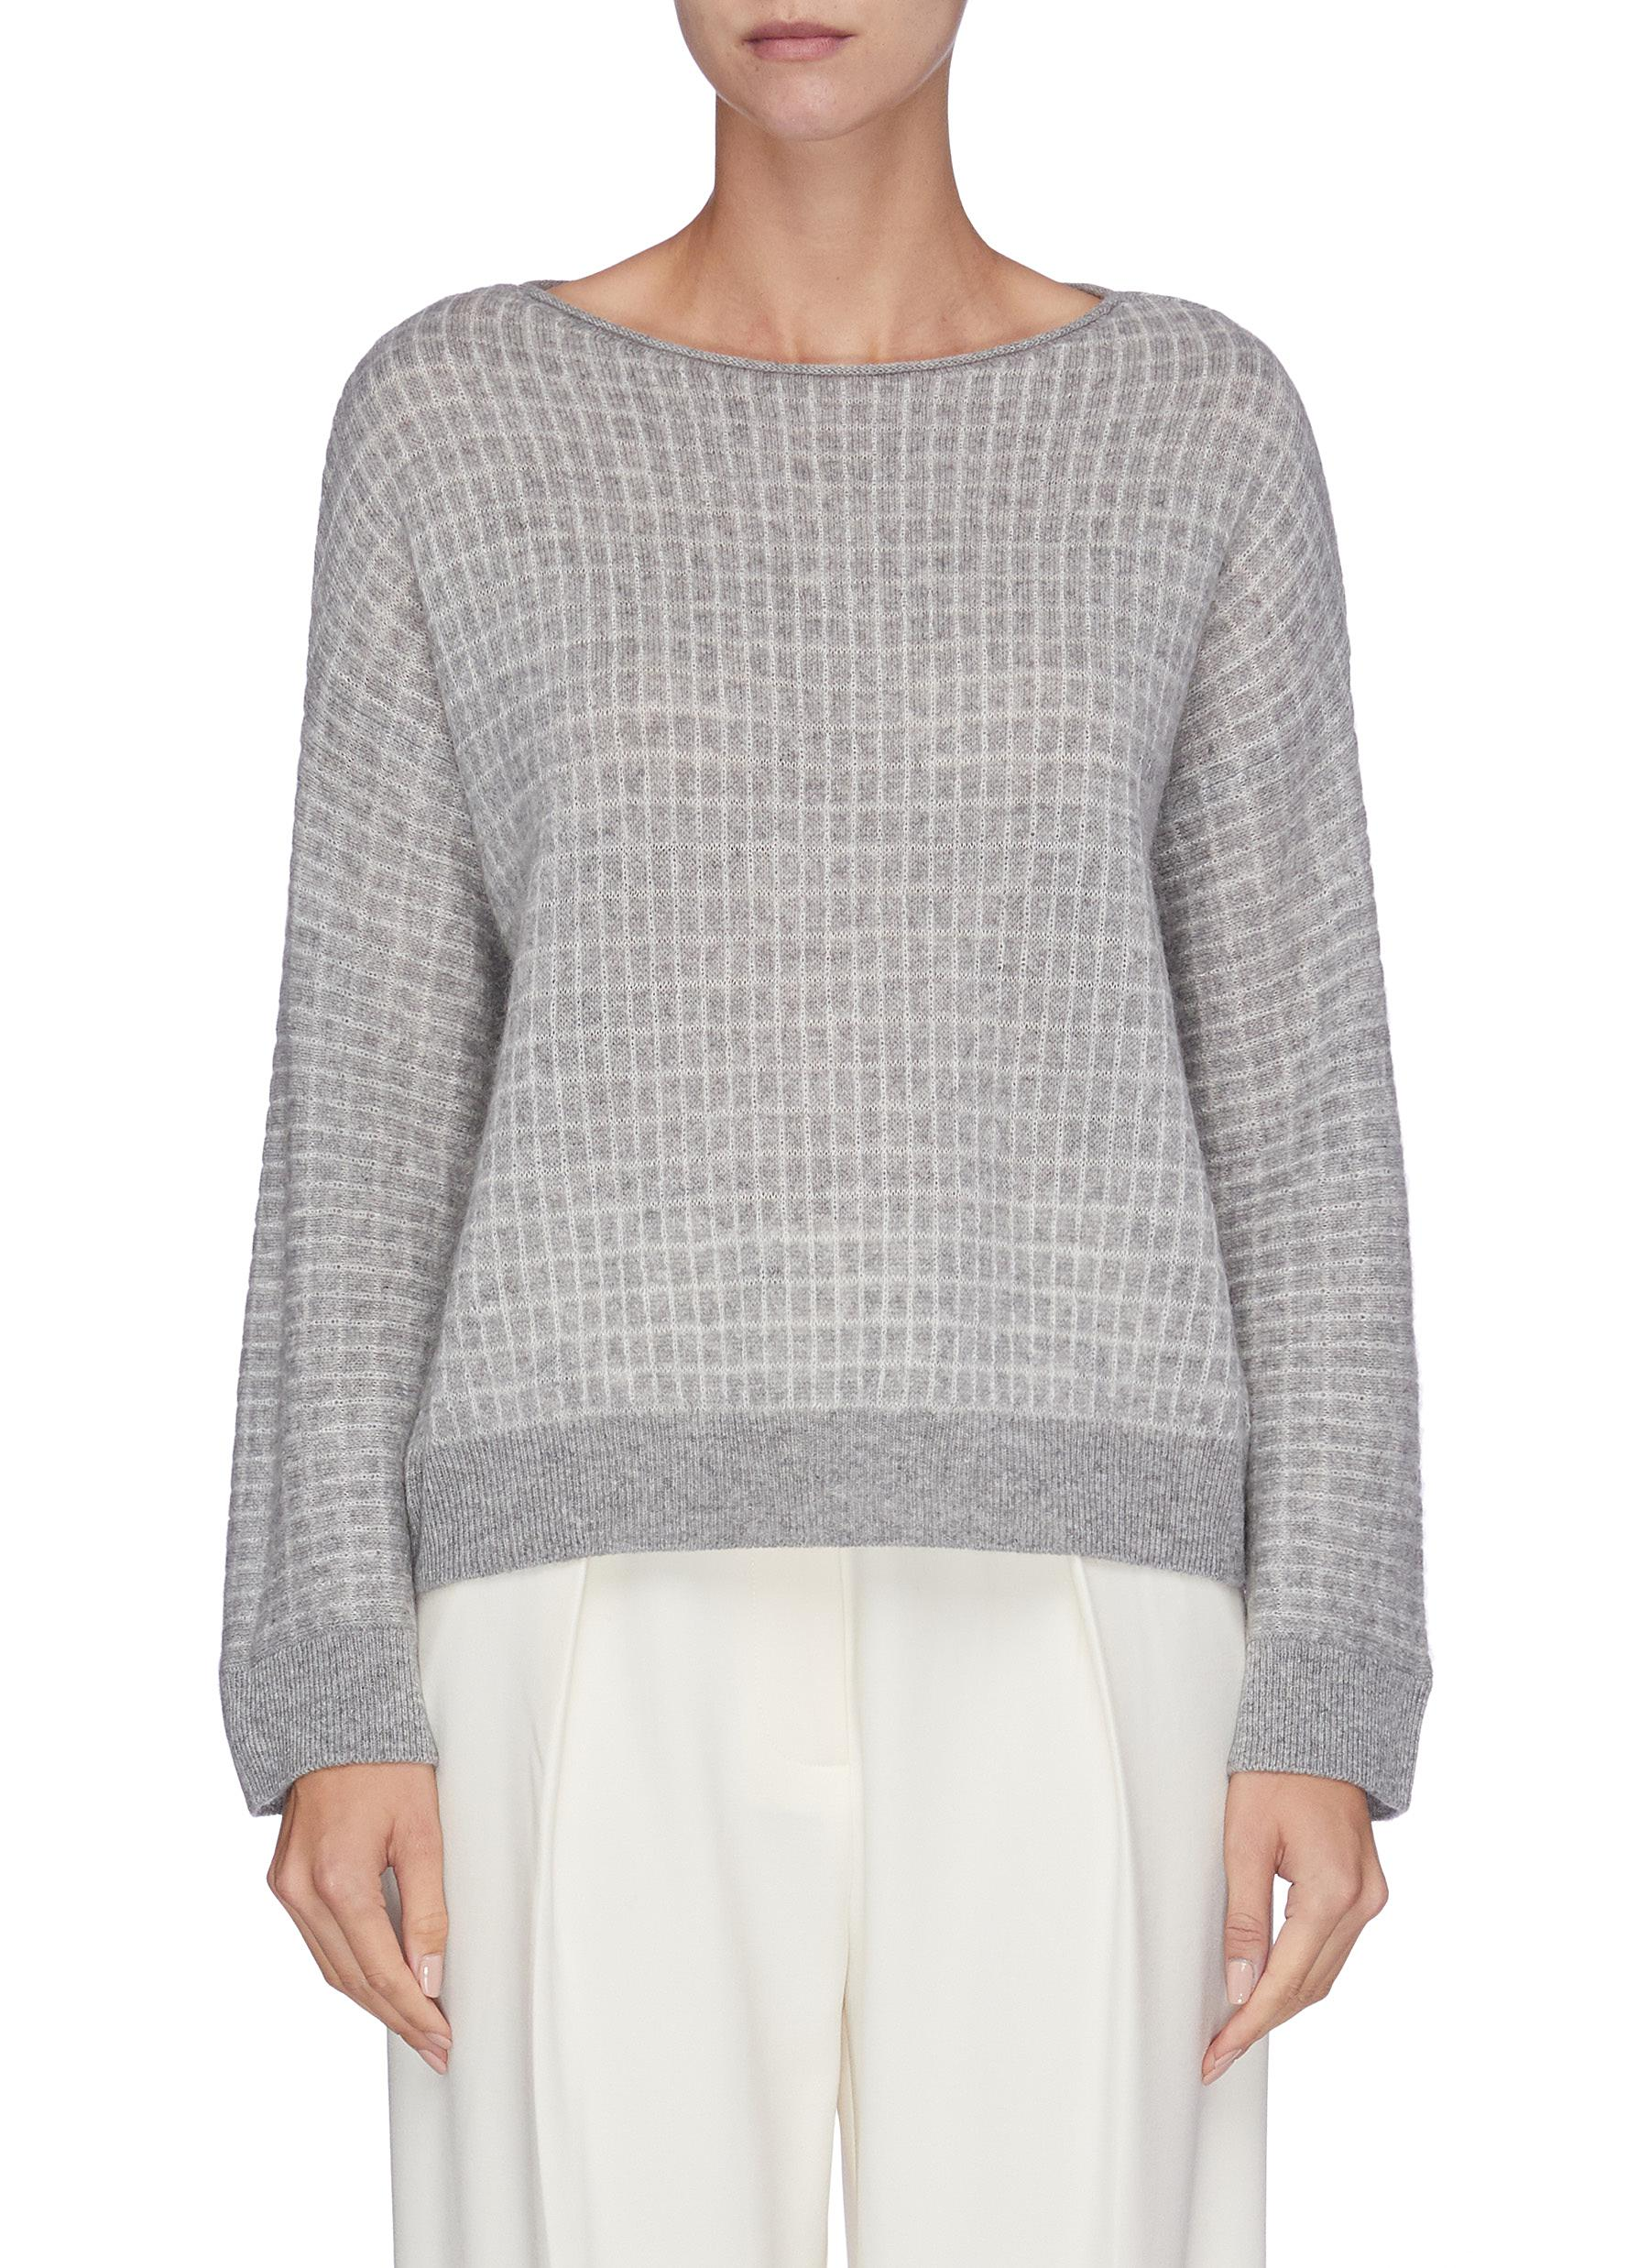 Grid check knit top by Vince